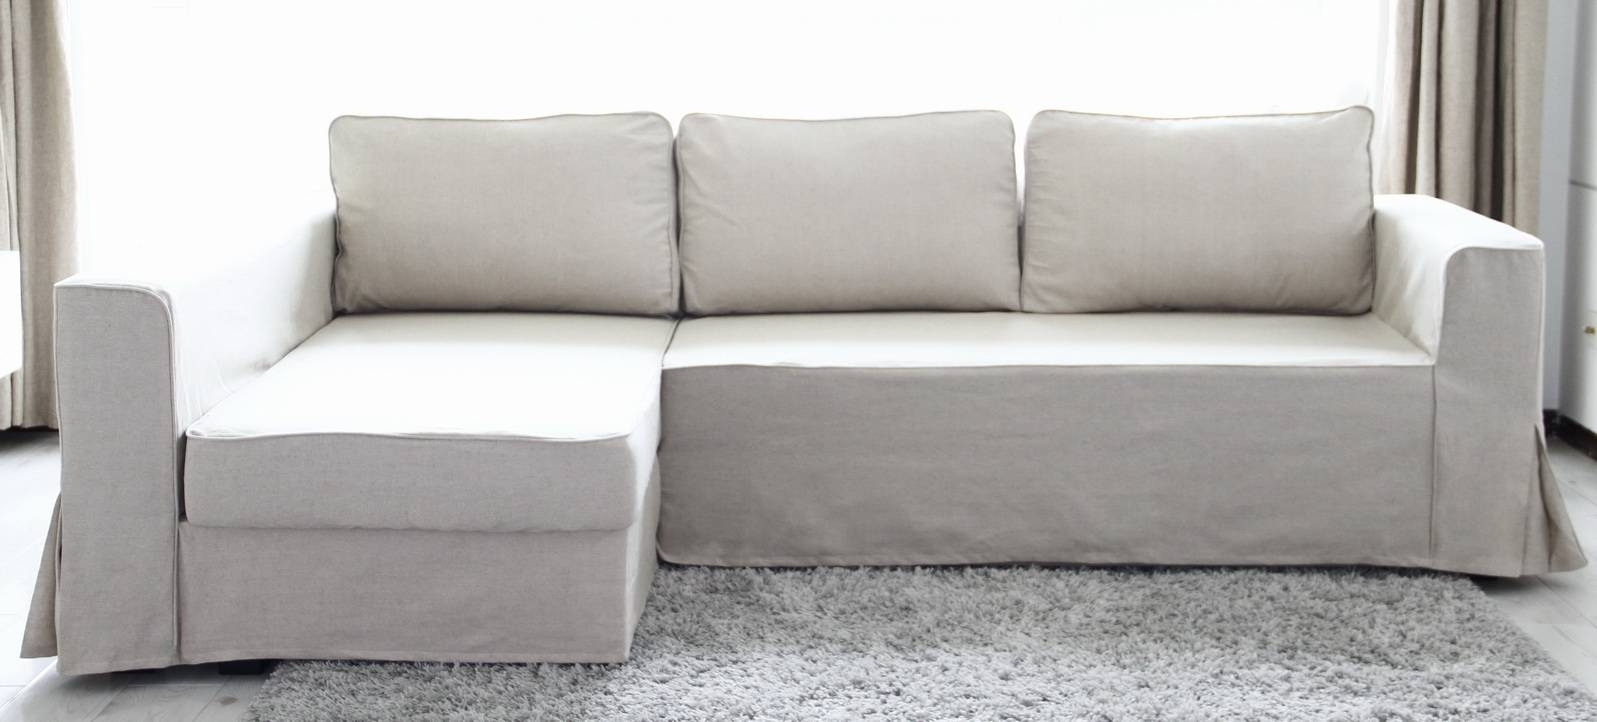 Loose Fit Linen Manstad Sofa Slipcovers Now Available in Slipcovered Chaises (Image 7 of 15)